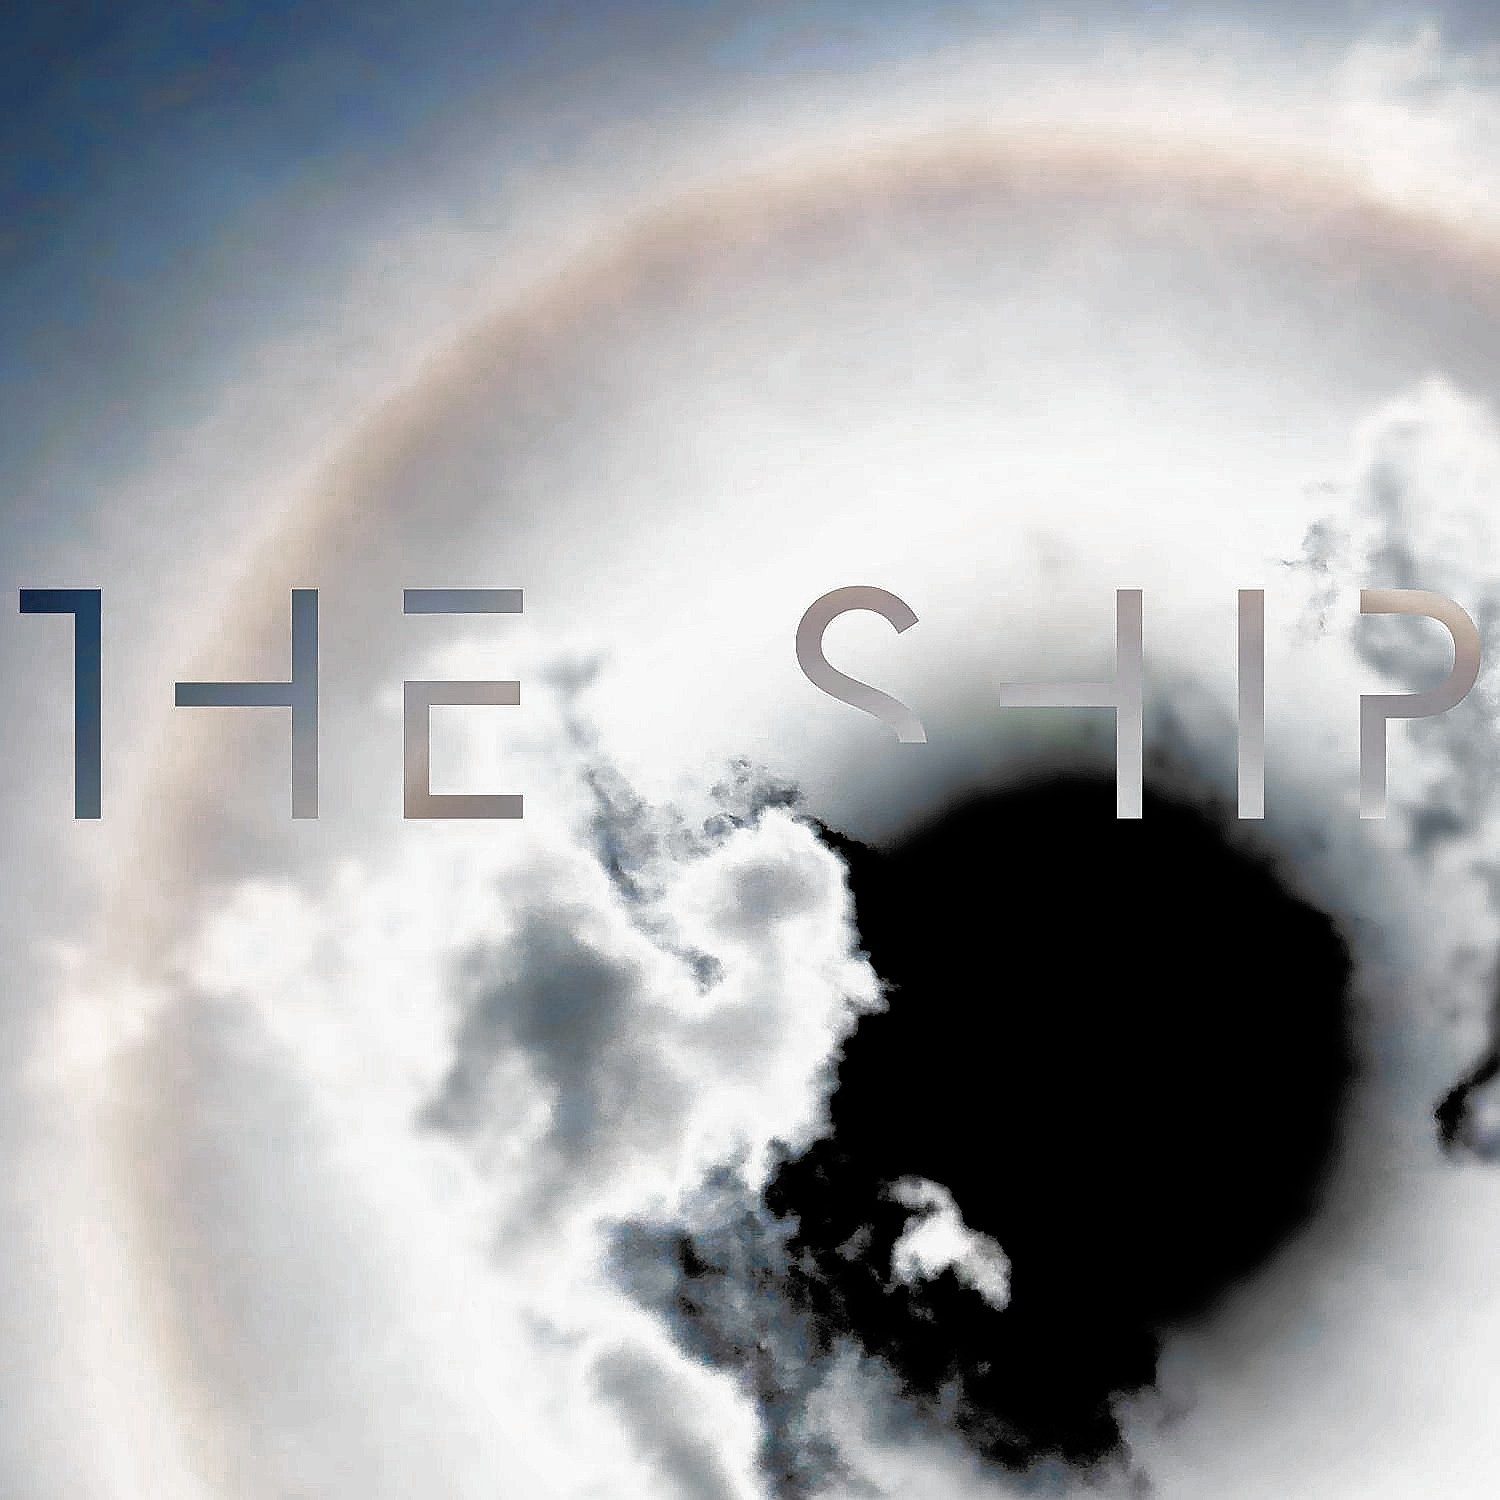 sc-brian-eno-the-ship-album-review-20160429